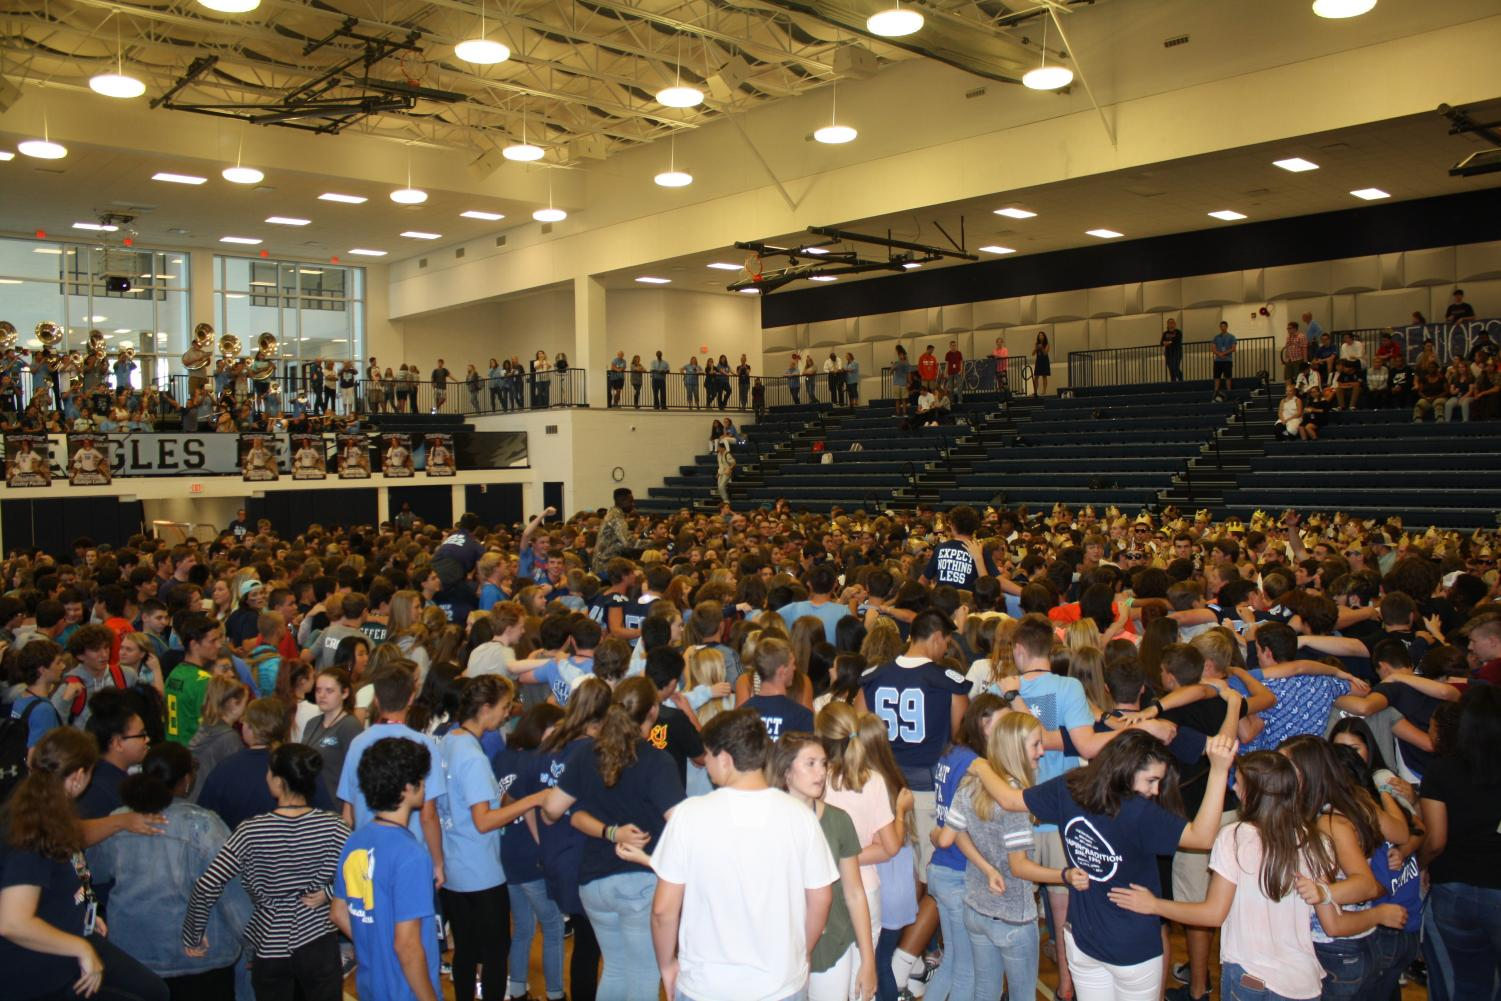 The+pep+rally+ends%2C+with+a+gathering+of+the+students+on+the+floor+to+sing+the+Chapin+Alma+Mater.